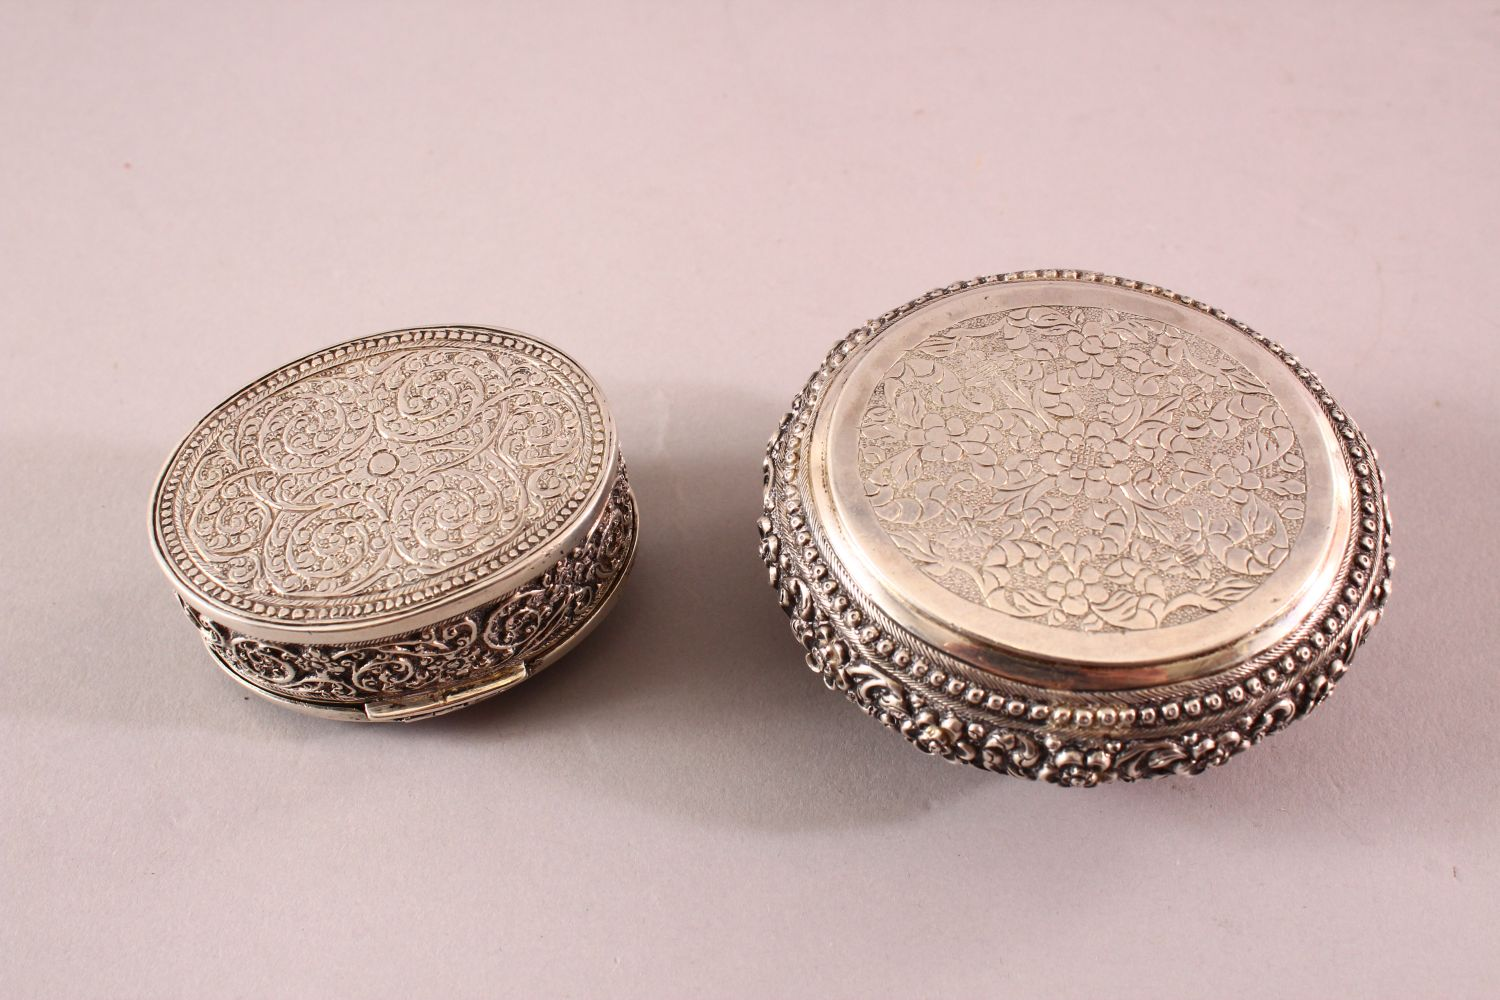 TWO 19TH CENTURY SRI LANKAN SILVER BOXES with filigree decoration, 7.5cm and 5.5cm wide. - Image 3 of 3